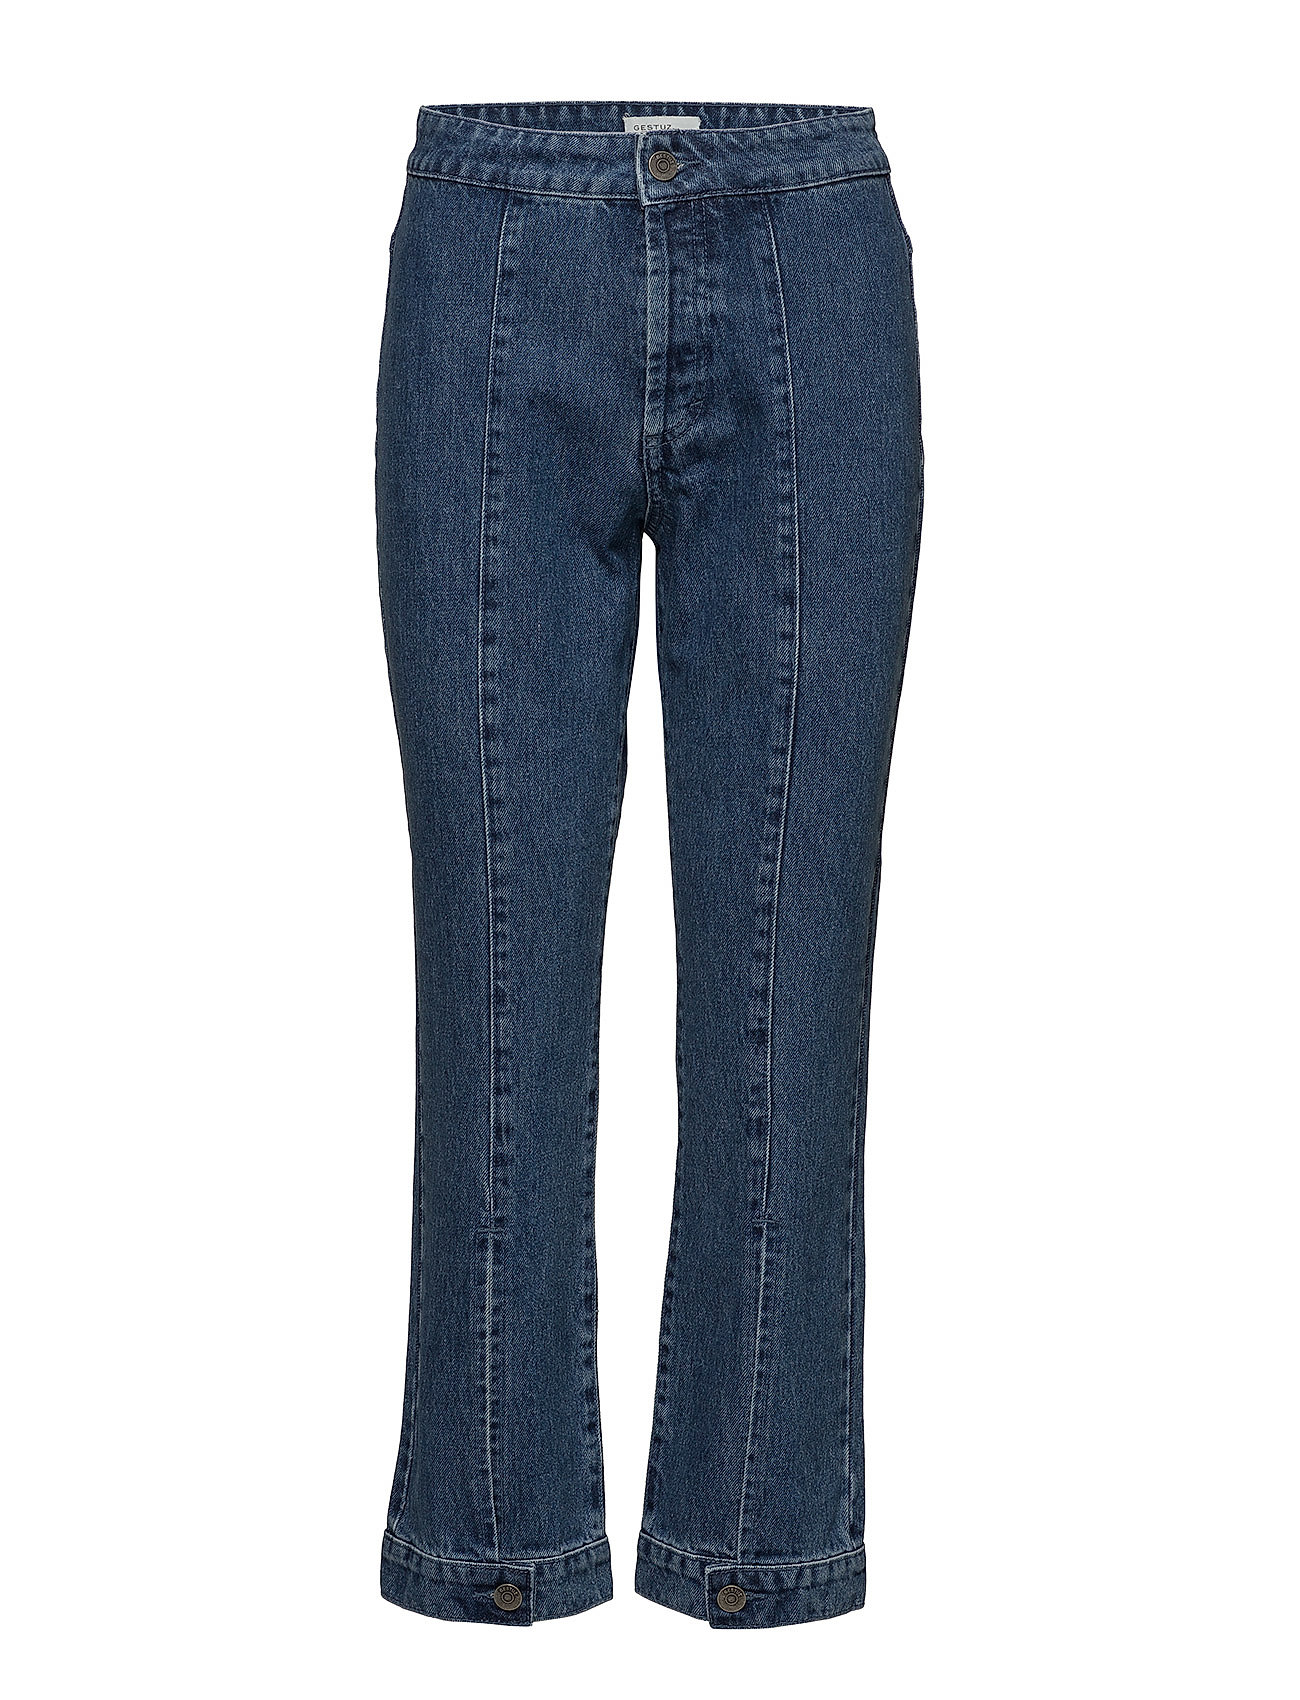 Gestuz Rubyn jeans MS18 - CAROLINA BLUE